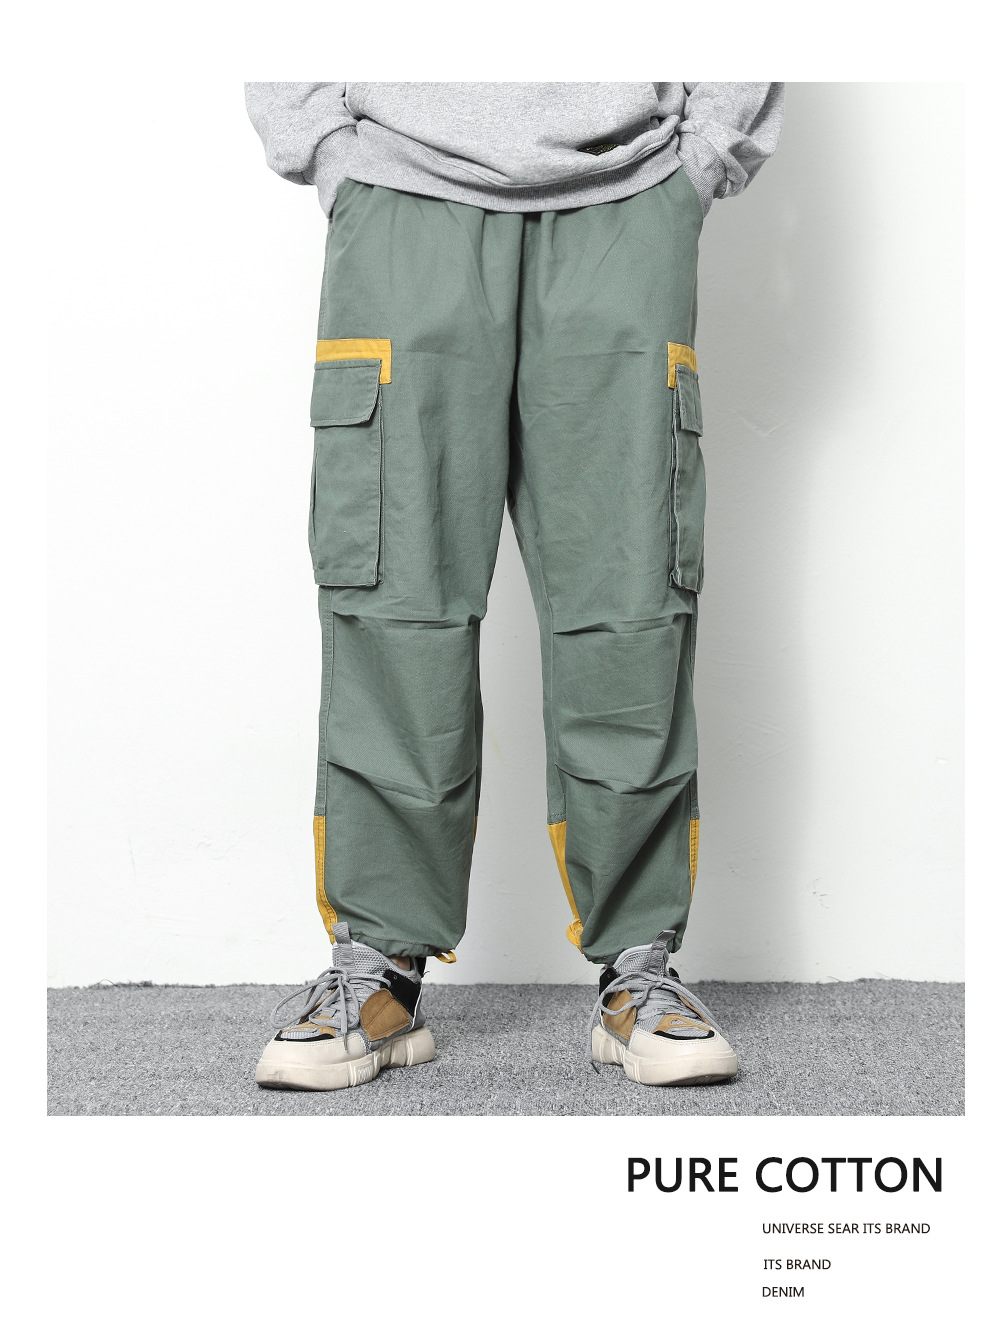 663145a0930 2018 Men Joggers Hip Hop Harem Sweat Pants Casual Loose Long Pants with  Pocket Hip Hop Army Green Teens Trousers Fashion Cool